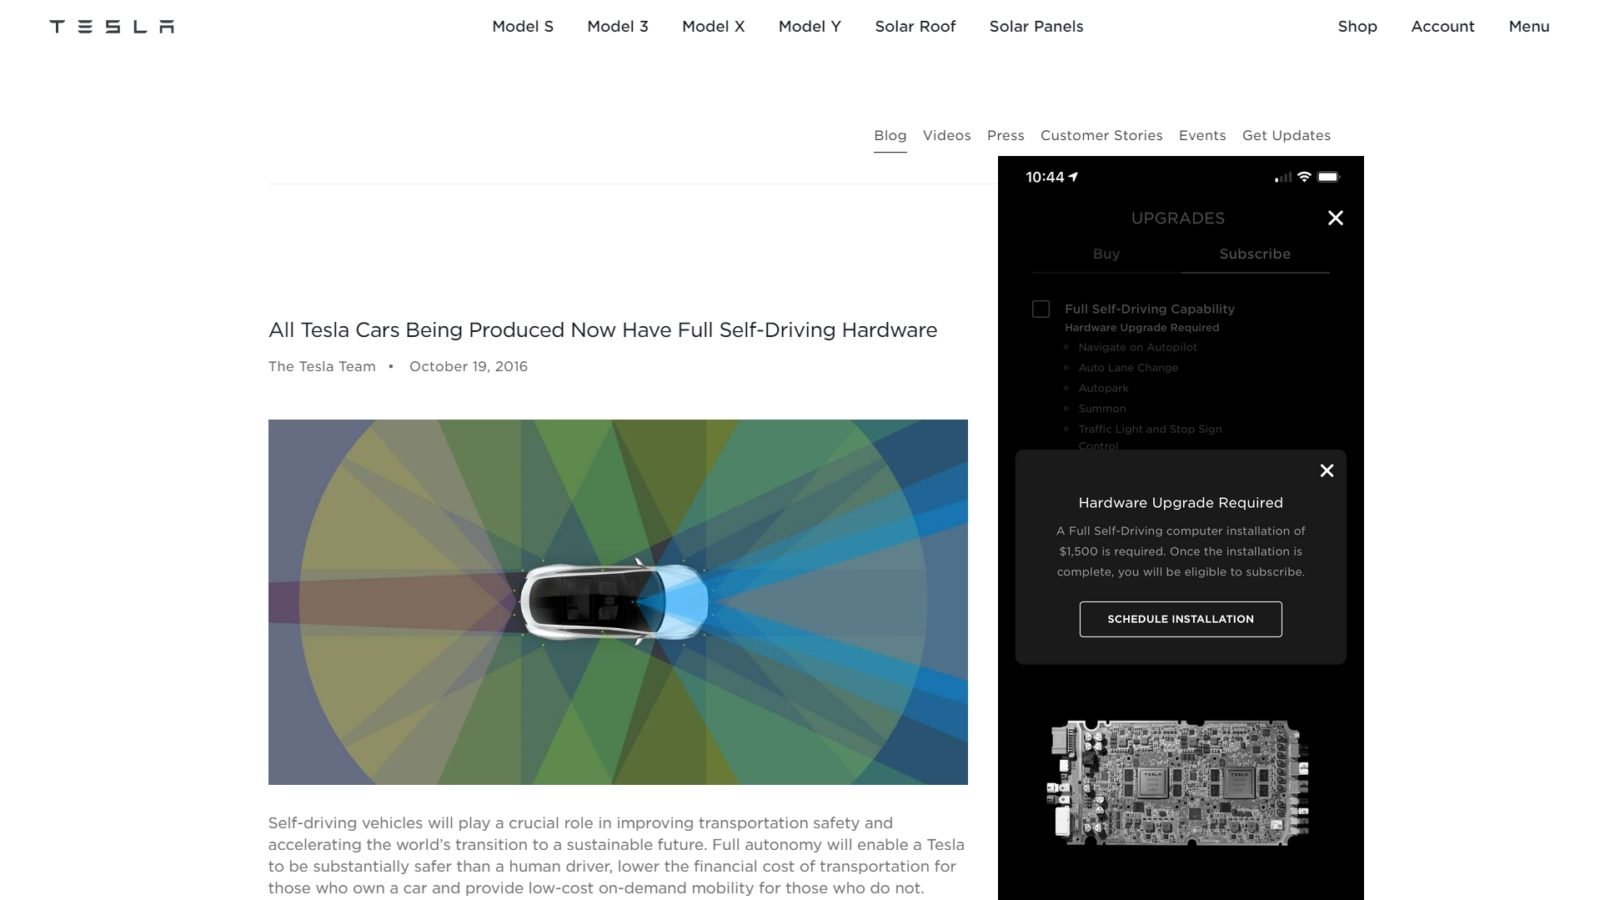 fsd-subscription-shows-tesla-wants-$1,500-for-hw-its-cars-should-already-have